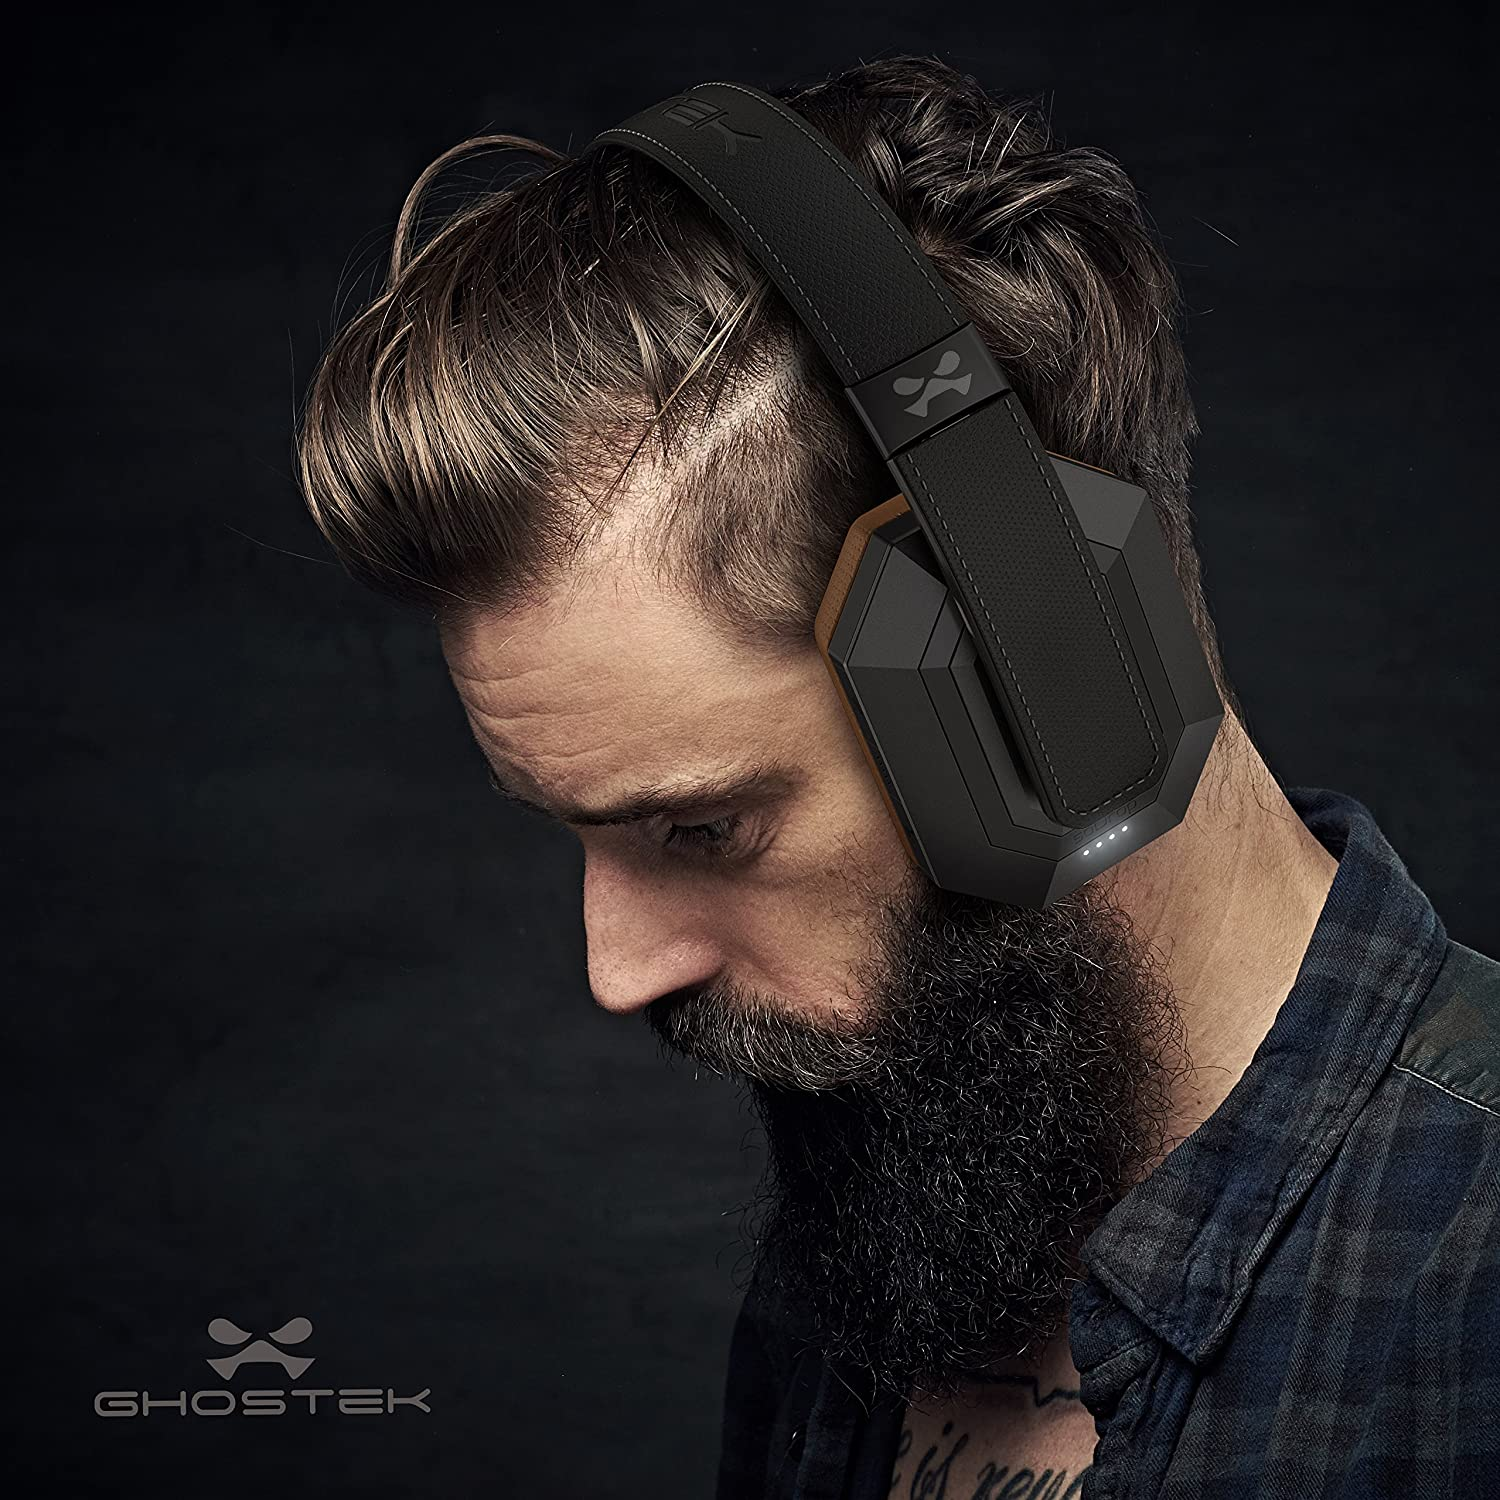 ghostek cuffie  Ghostek Sodrop PRO Wireless Cuffie Active Noise canceling Bluetooth ...